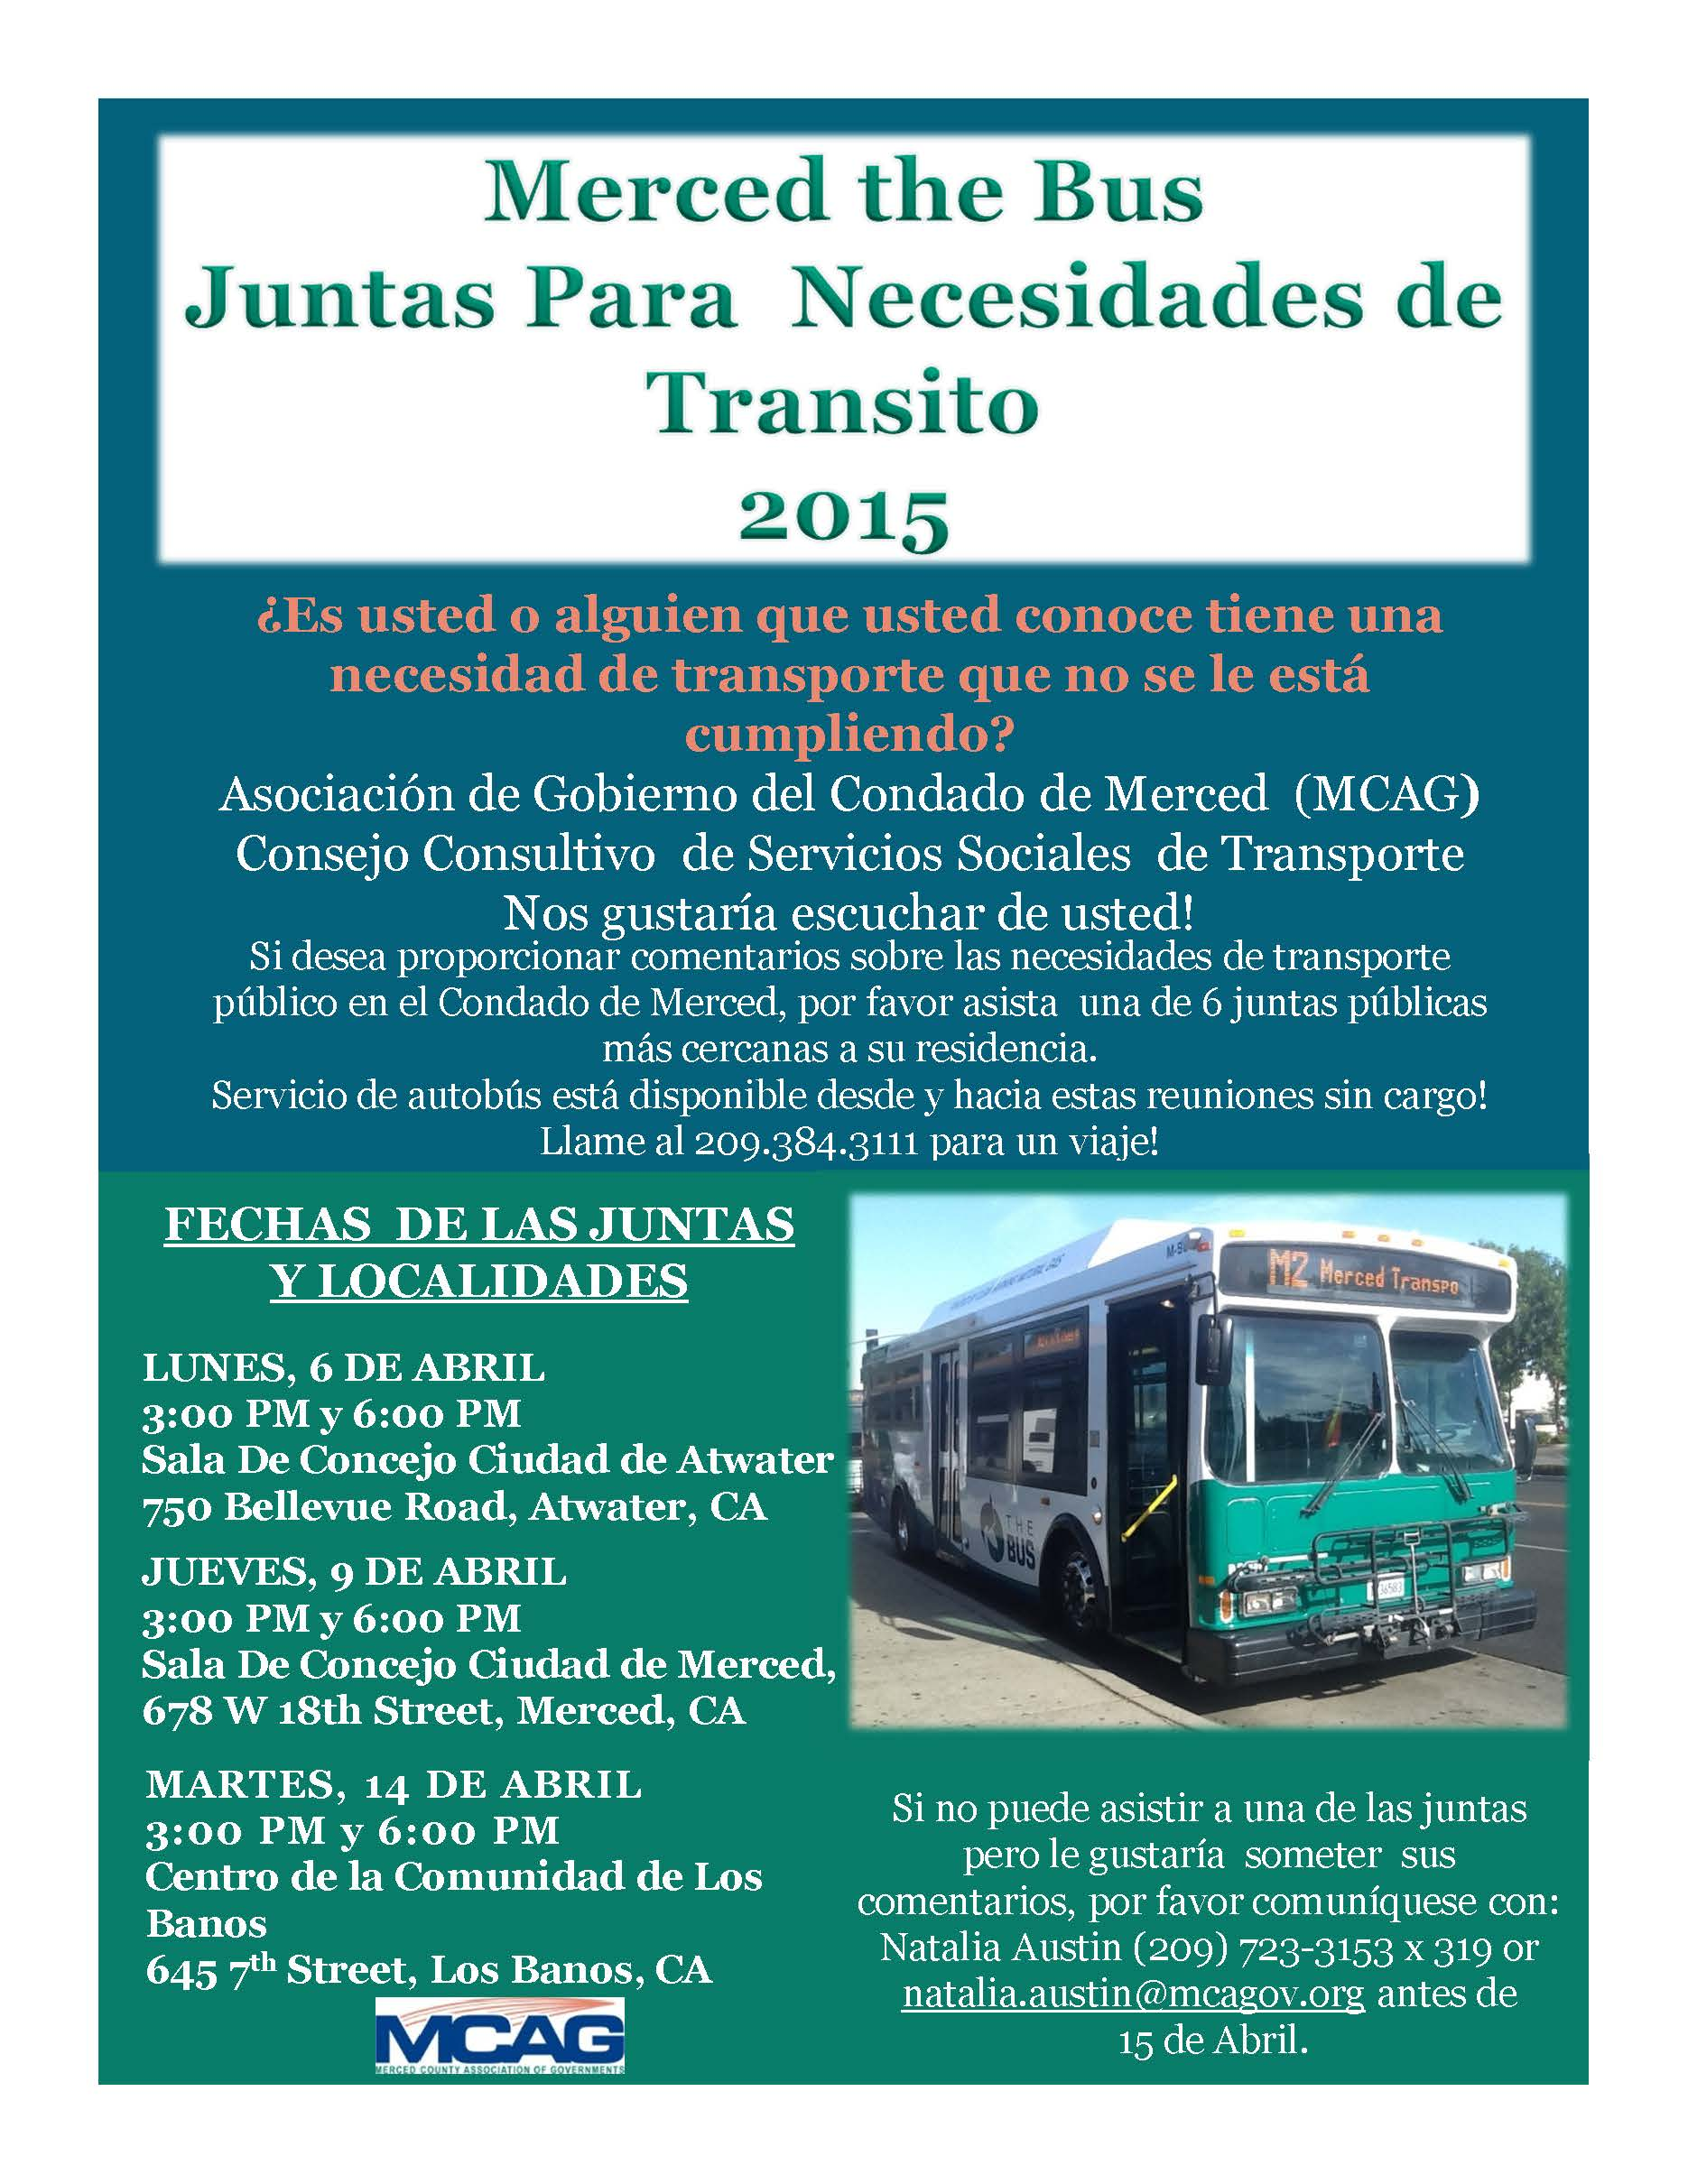 Unmet Transit Needs Spanish Flyer 2015_Page_1